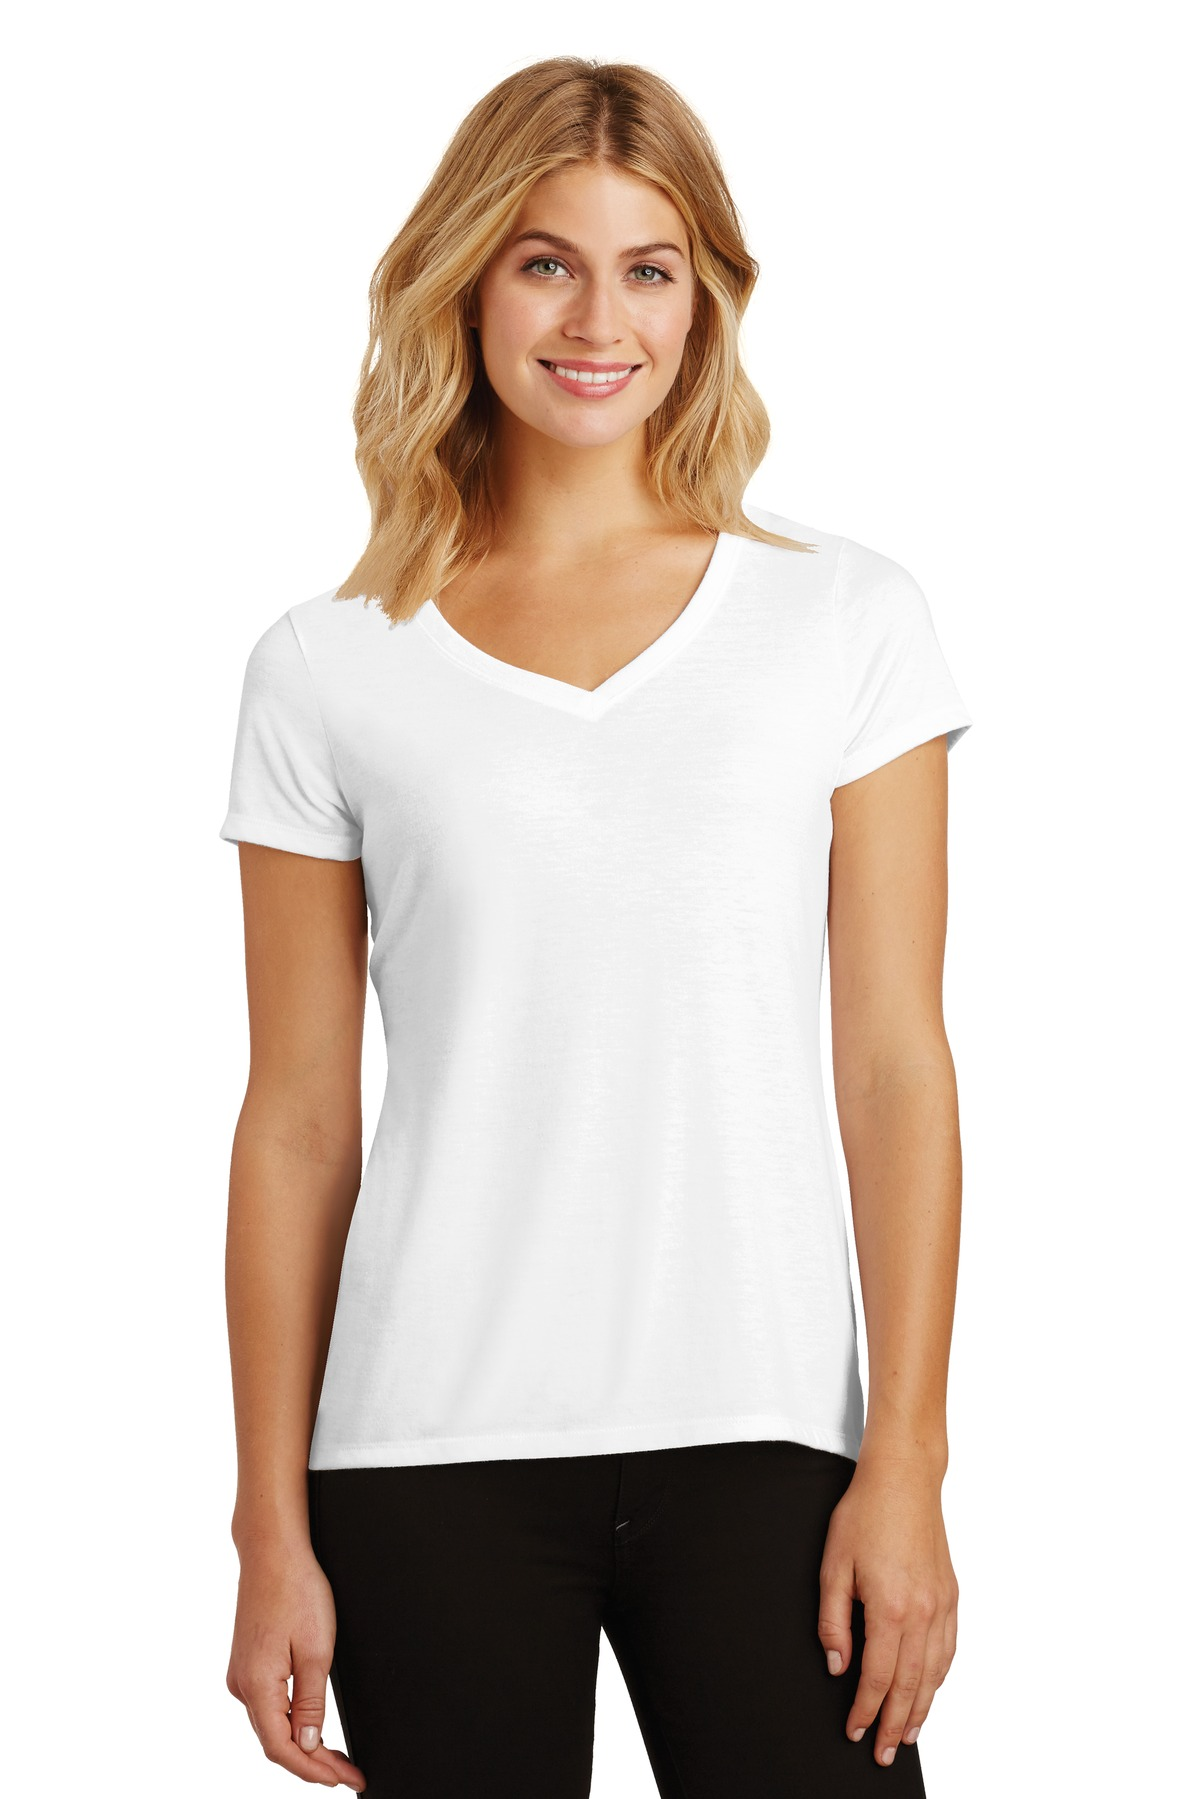 District ®  Women's Perfect Tri ®  V-Neck Tee. DM1350L - White